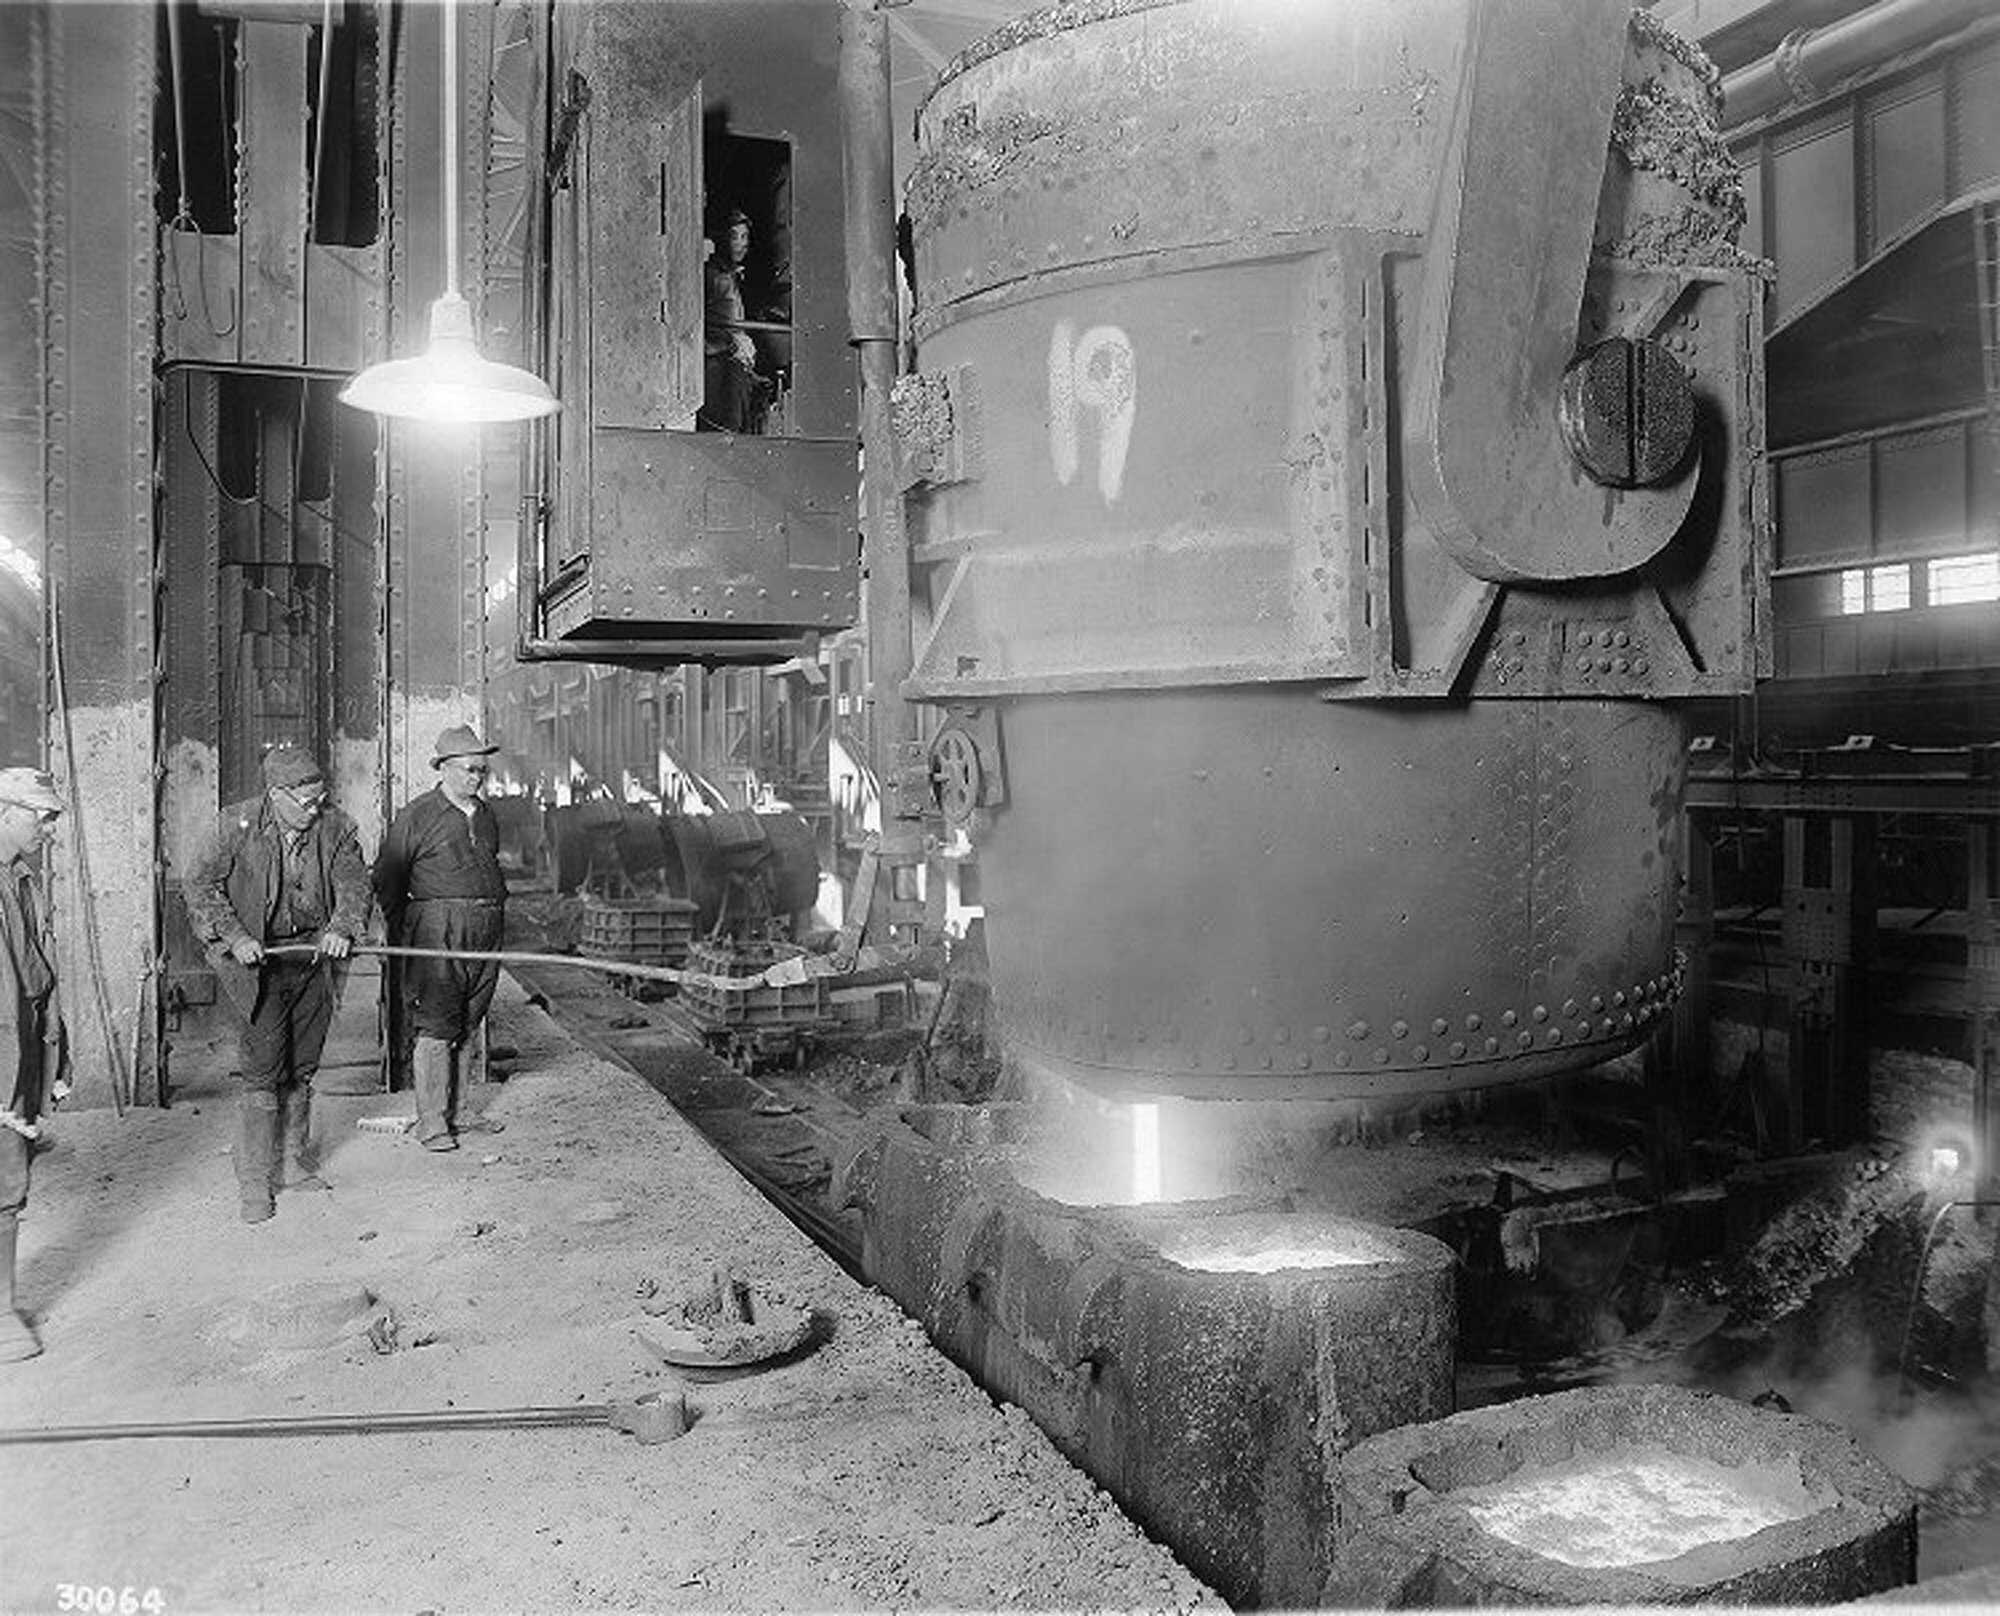 Steel-workers-gaze-on-as-molten-steel-is-poured-from-ladle-to-casts-at-Homestead-Steel-Works,-December-31,-1914.-PD..jpg